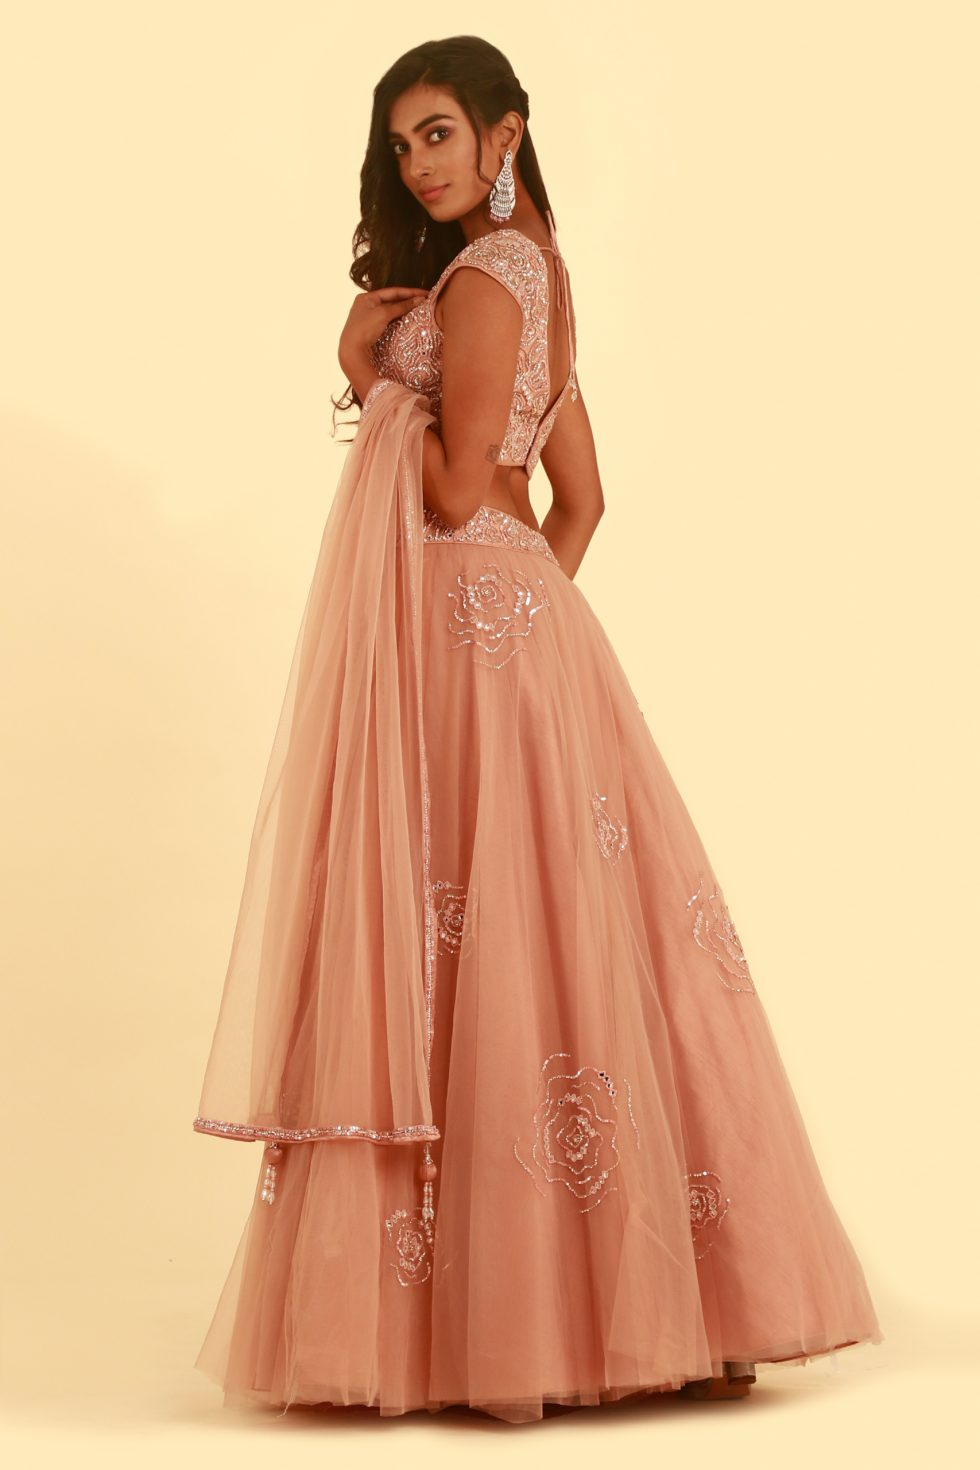 Rustic pink tulle lehenga set with matching dupatta and embroidered blouse